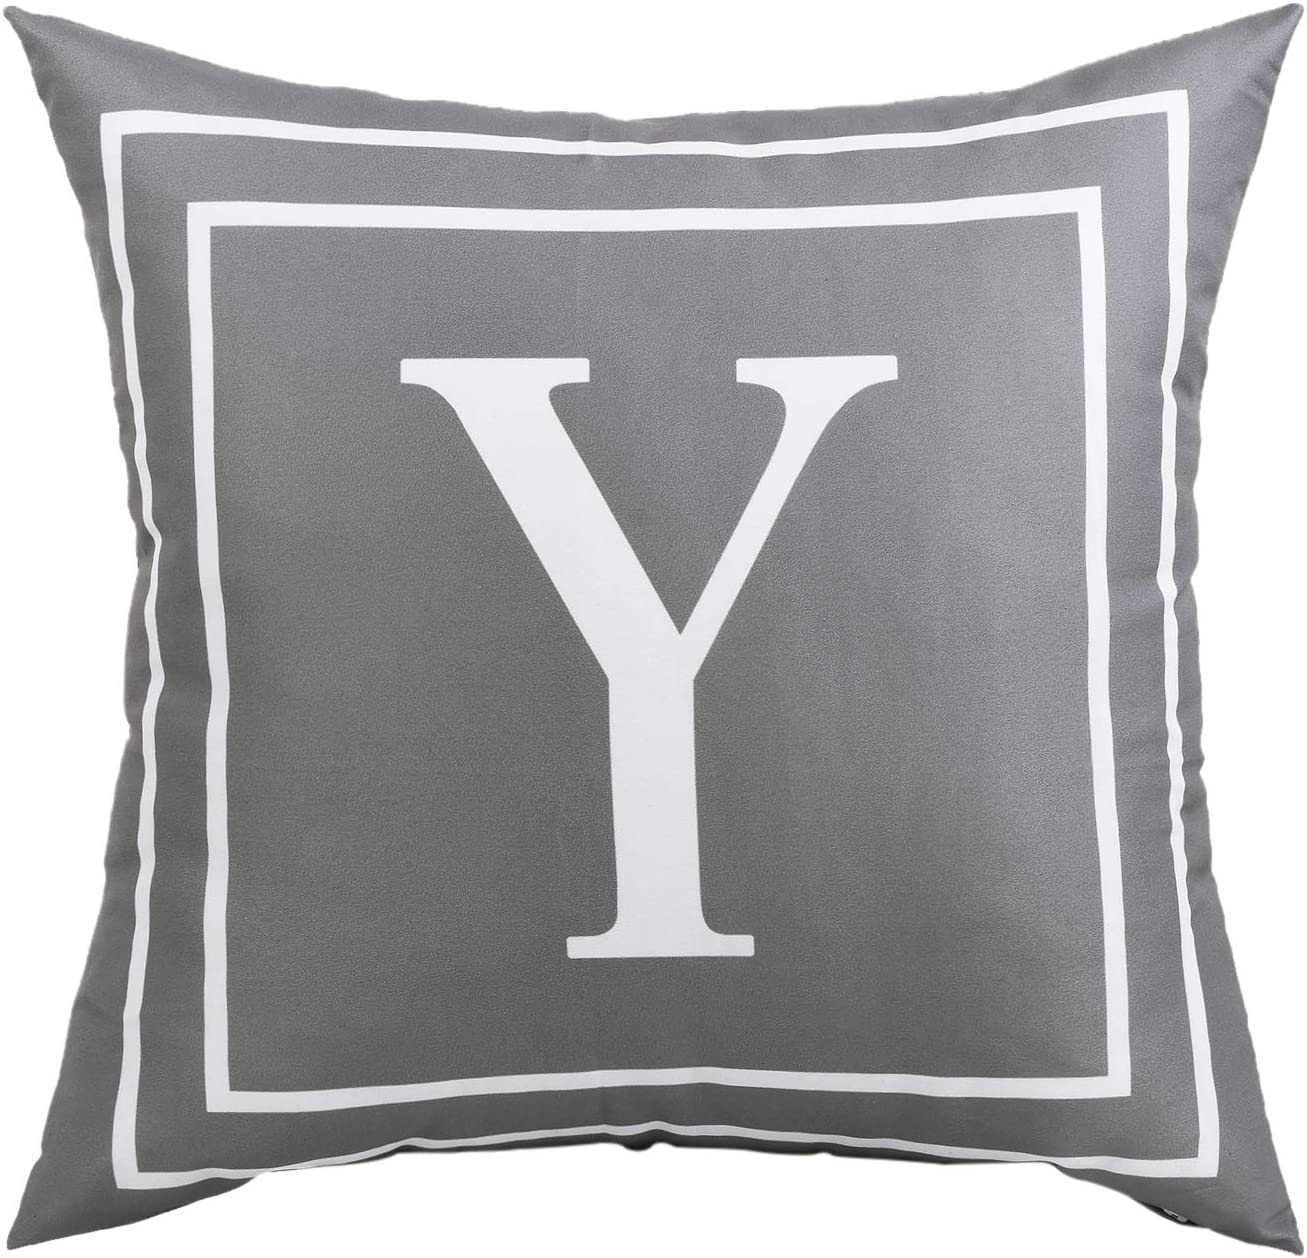 ASPMIZ Throw Pillow Covers English Alphabet Y Pillow Covers, Initial Pillowcases Gray Letter Throw Pillow Covers, Decorative Cushion Cover for Bed Bedroom Couch Sofa (Gray, 18 x 18 inch)